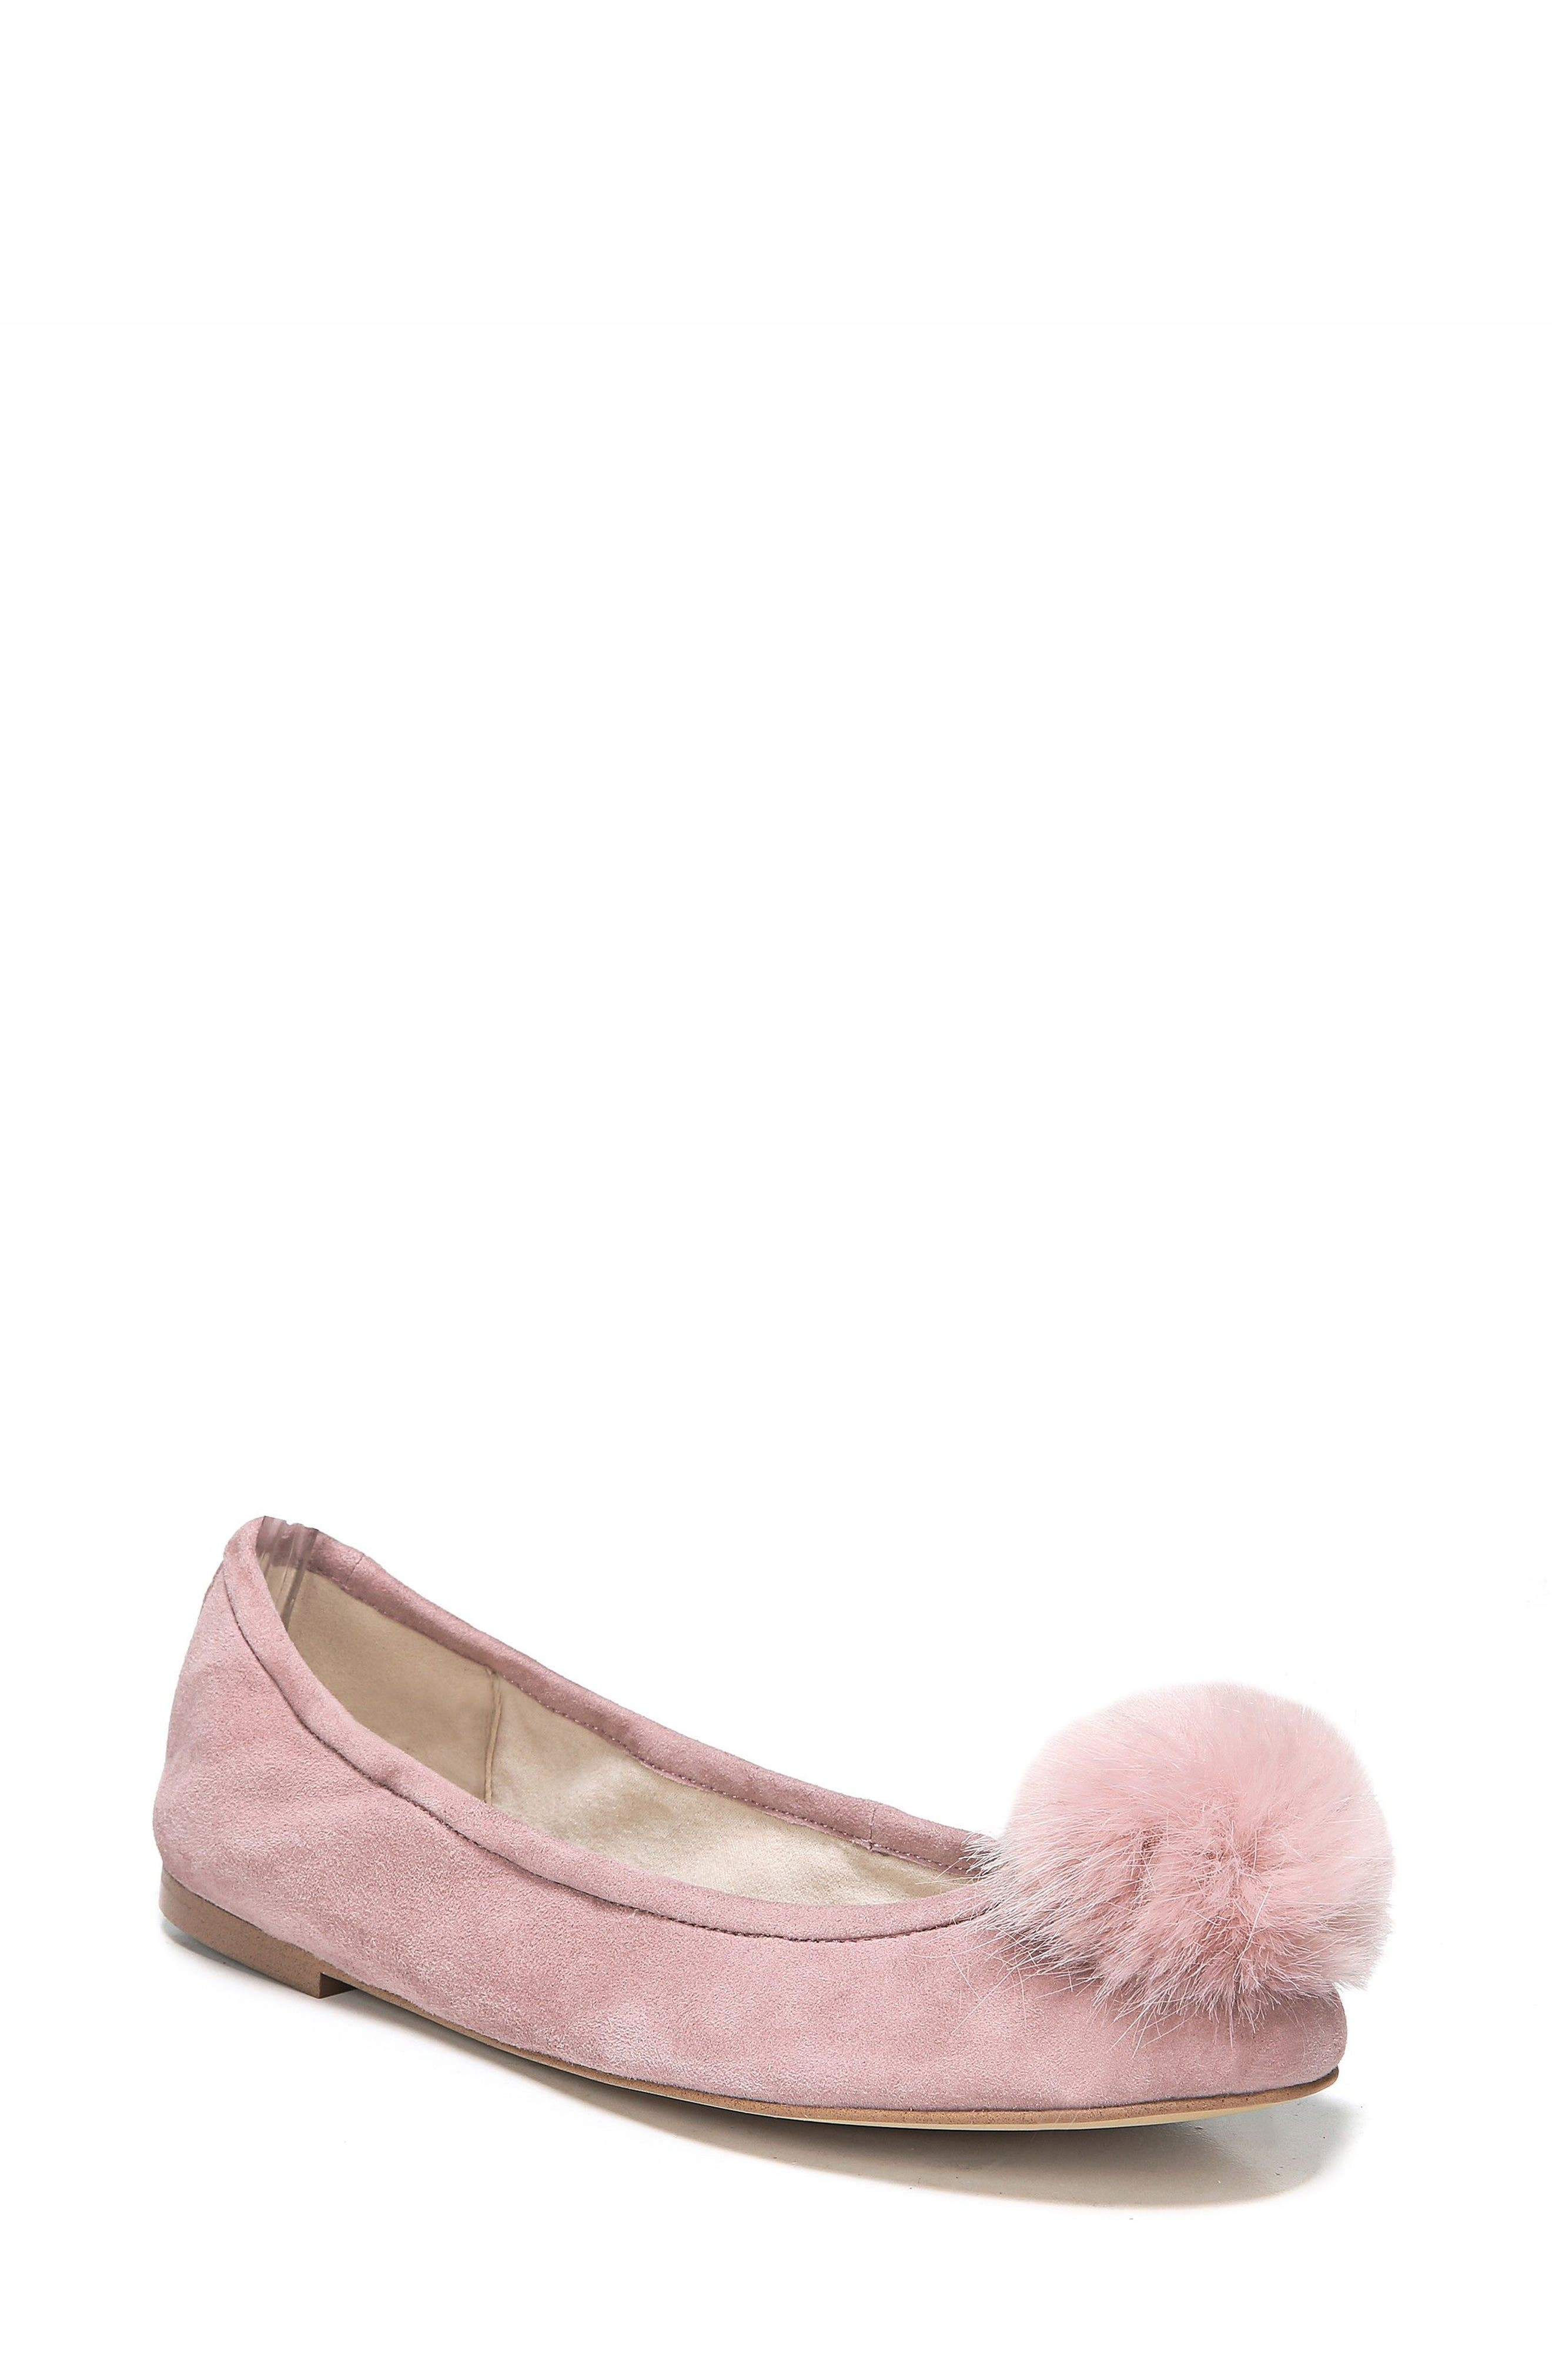 Sam Edelman Farina Flat with Faux Fur Pompom (Women)